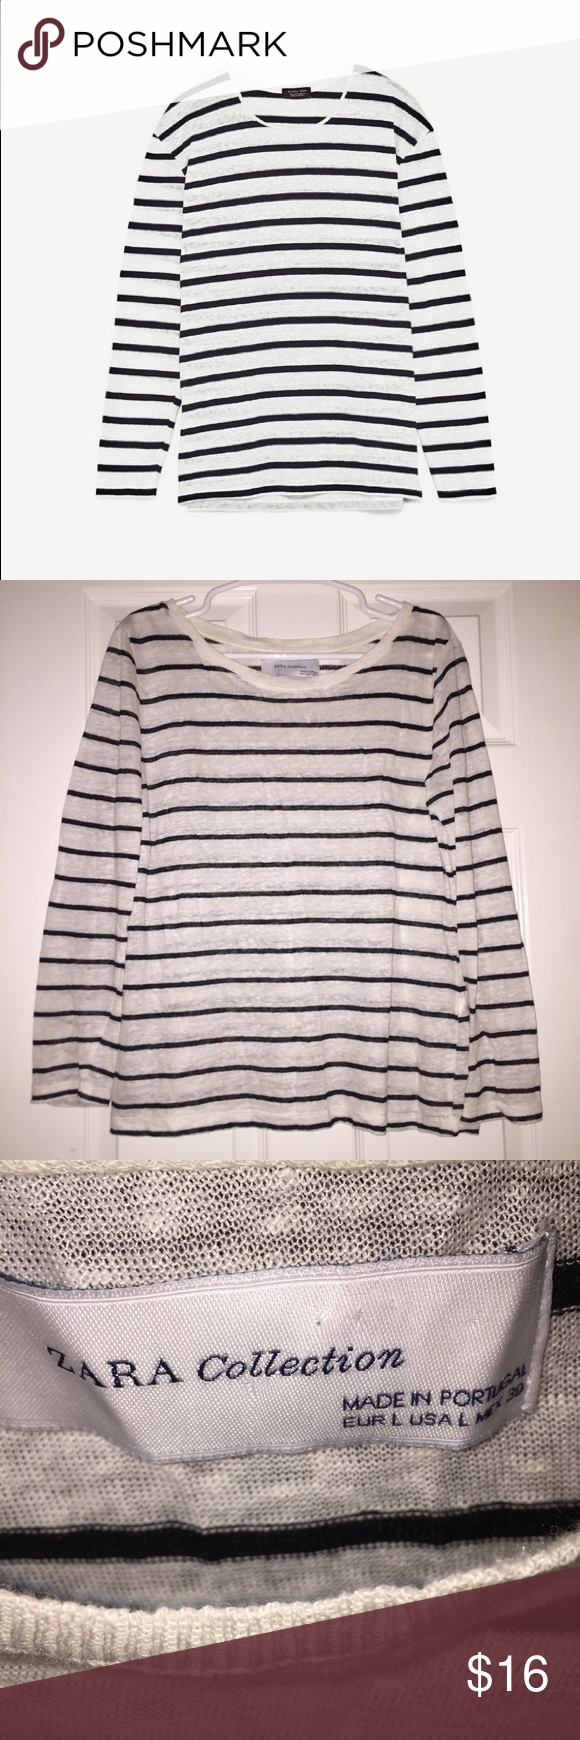 3620e37b50a Zara Black White Striped Long Sleeve Linen Top In like new condition! Size  large. 100% linen. No flaws. Zara Tops Tees - Long Sleeve